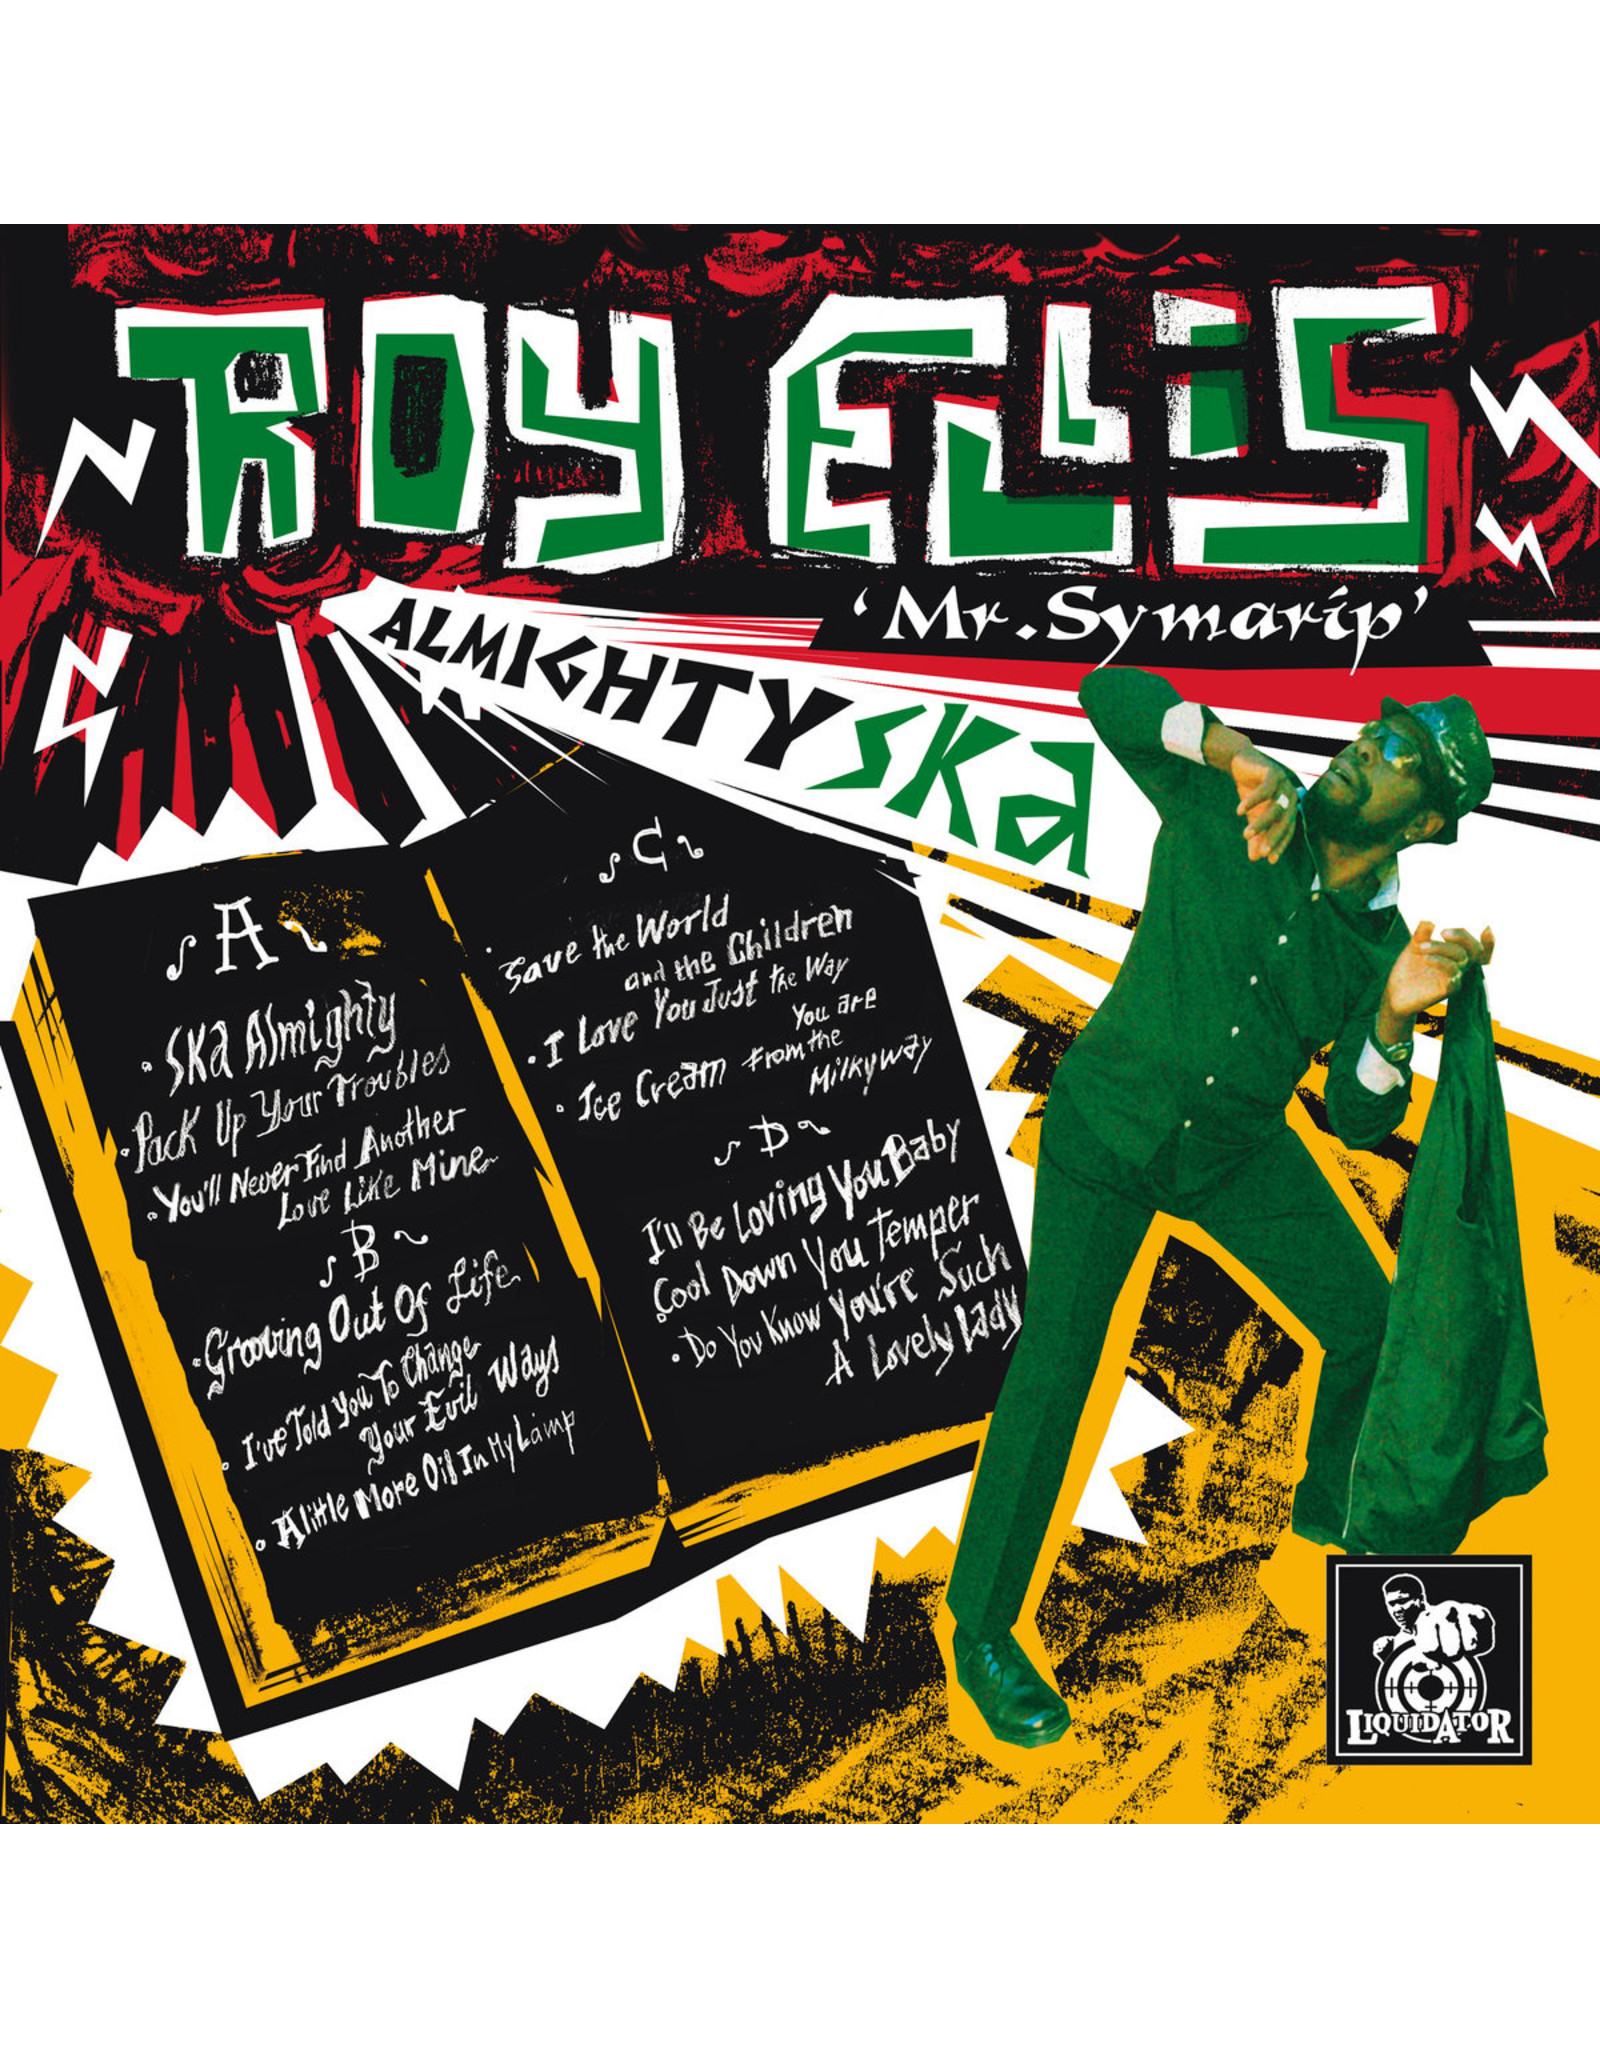 New Vinyl Roy Ellis & The Transilvanians - Almighty Ska 2LP